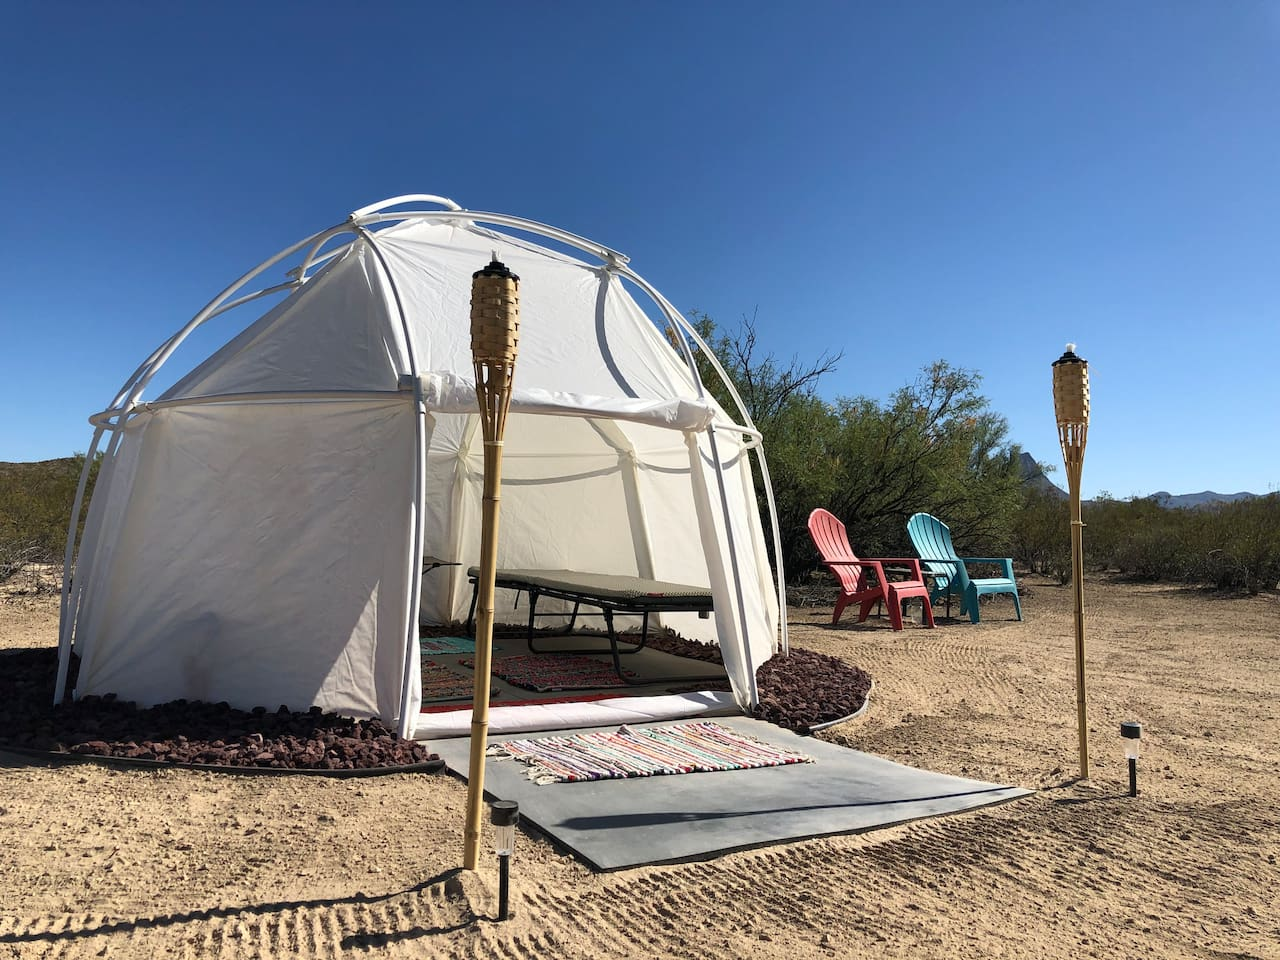 The Creosote Castle is a secure dome tent measuring 10 feet across.